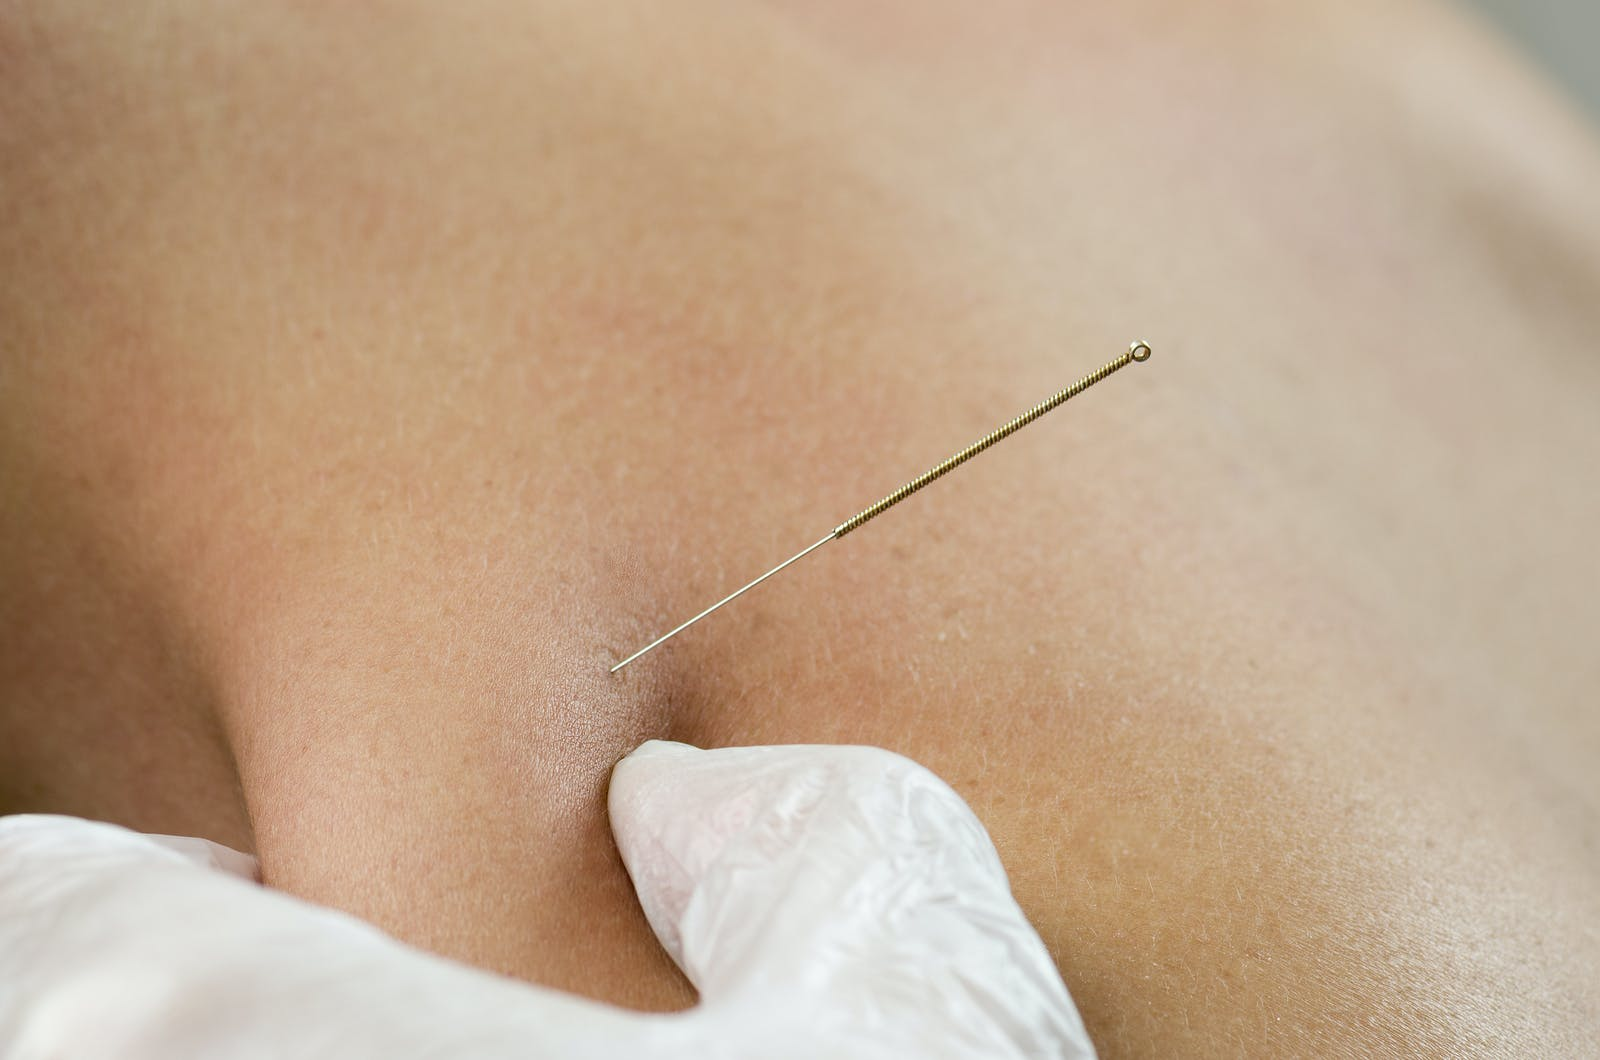 Dry Needling is also known as intramuscular stimulation (IMS) and trigger  point dry needling (TDN). It is a safe, effective and efficient treatment  used to: